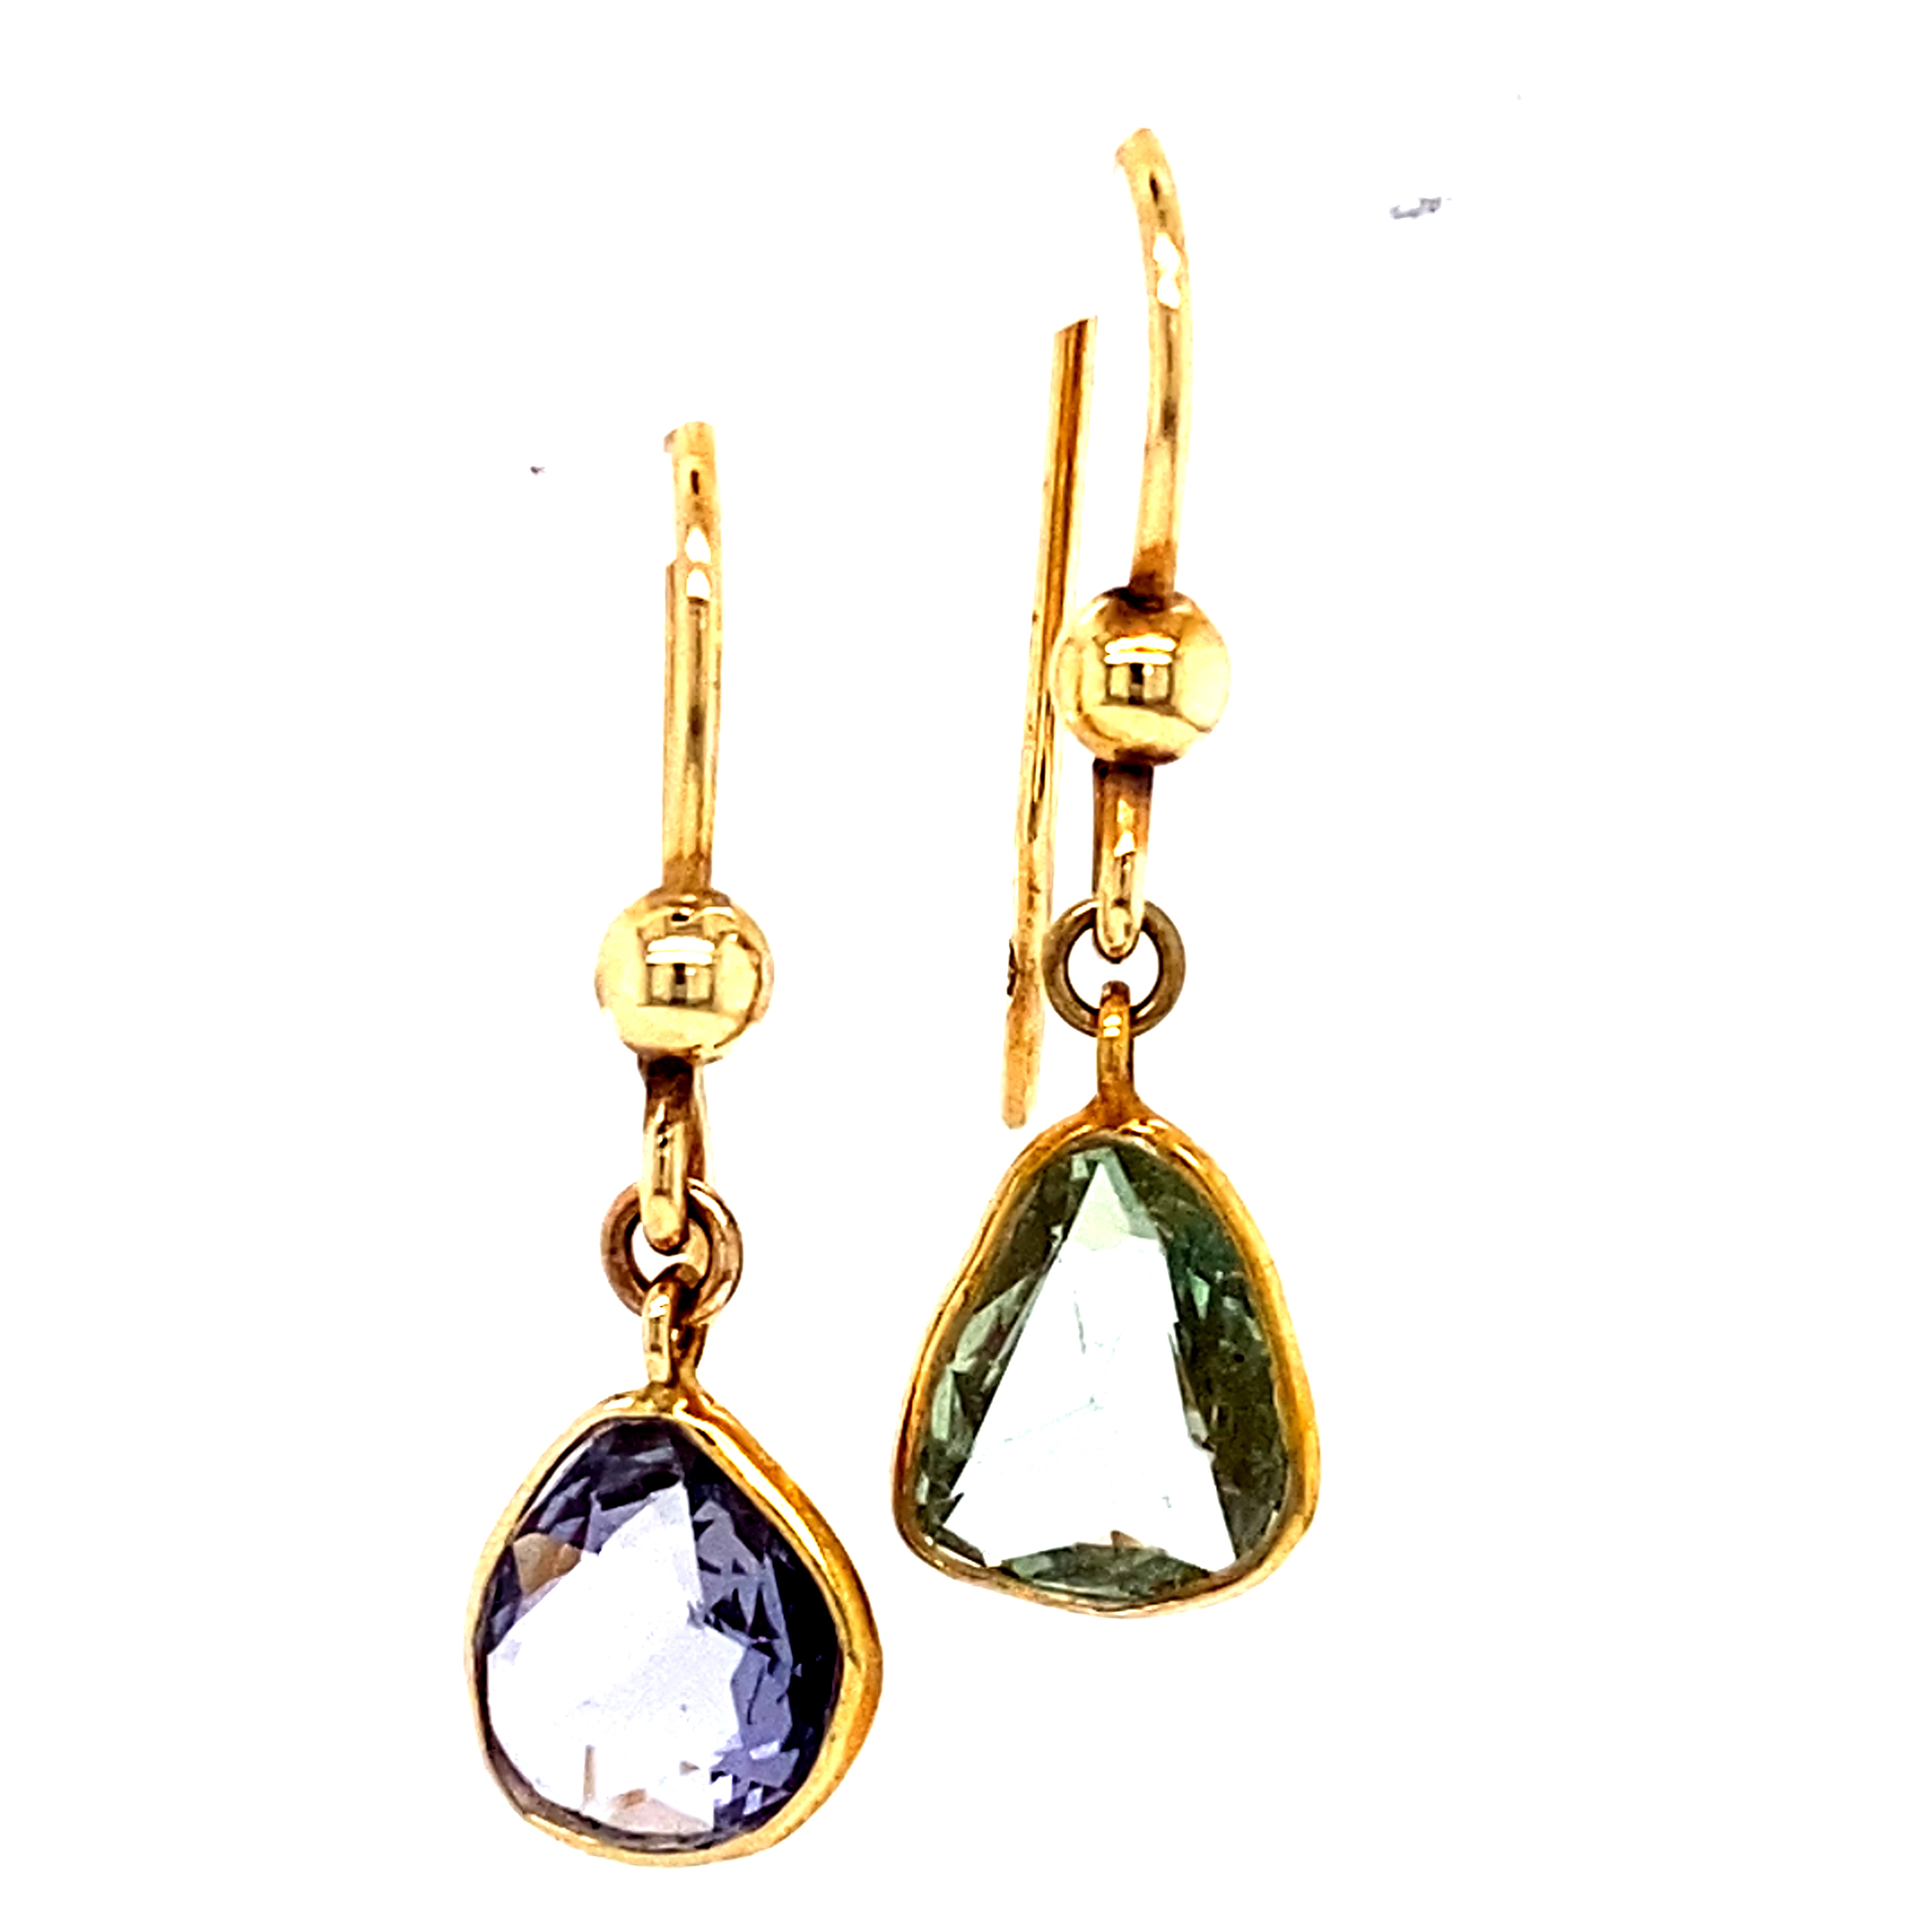 18 Carat Yellow Gold and Sapphire Earrings